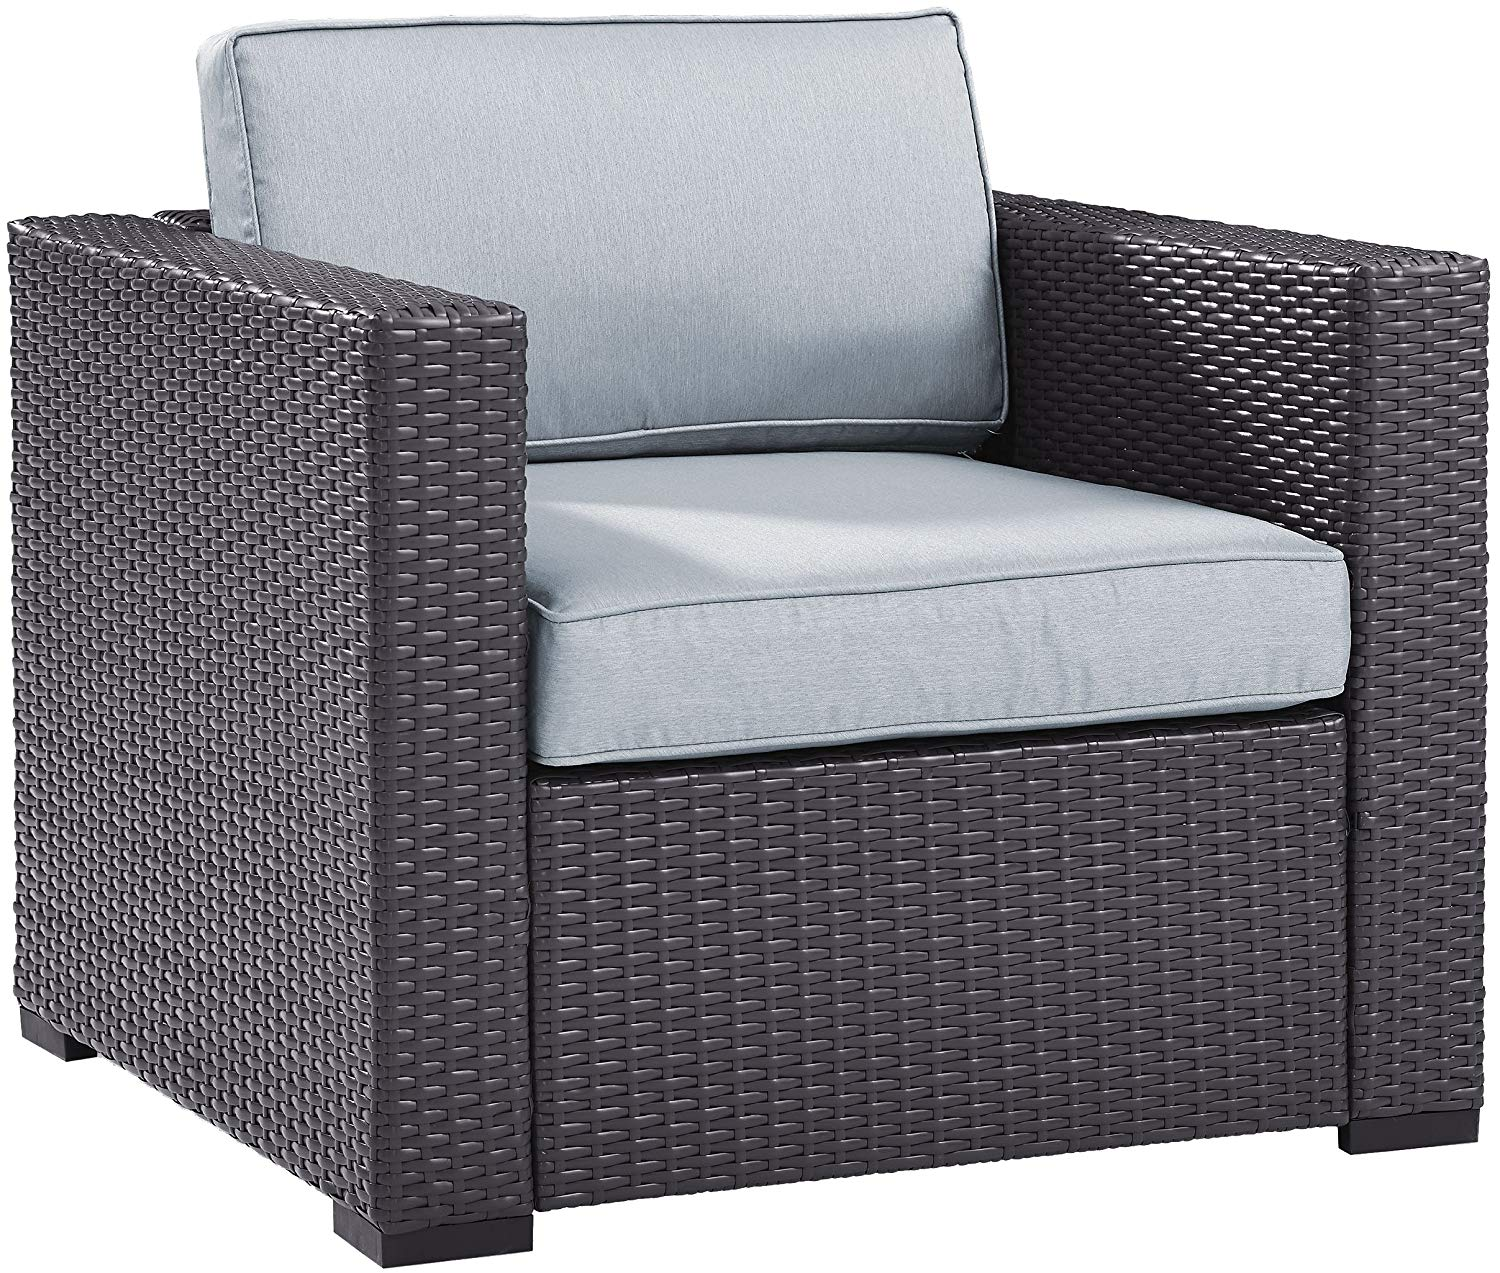 Crosley Furniture KO70130BR-MI Biscayne Outdoor Wicker Arm Chair, Brown with Mist Cushions